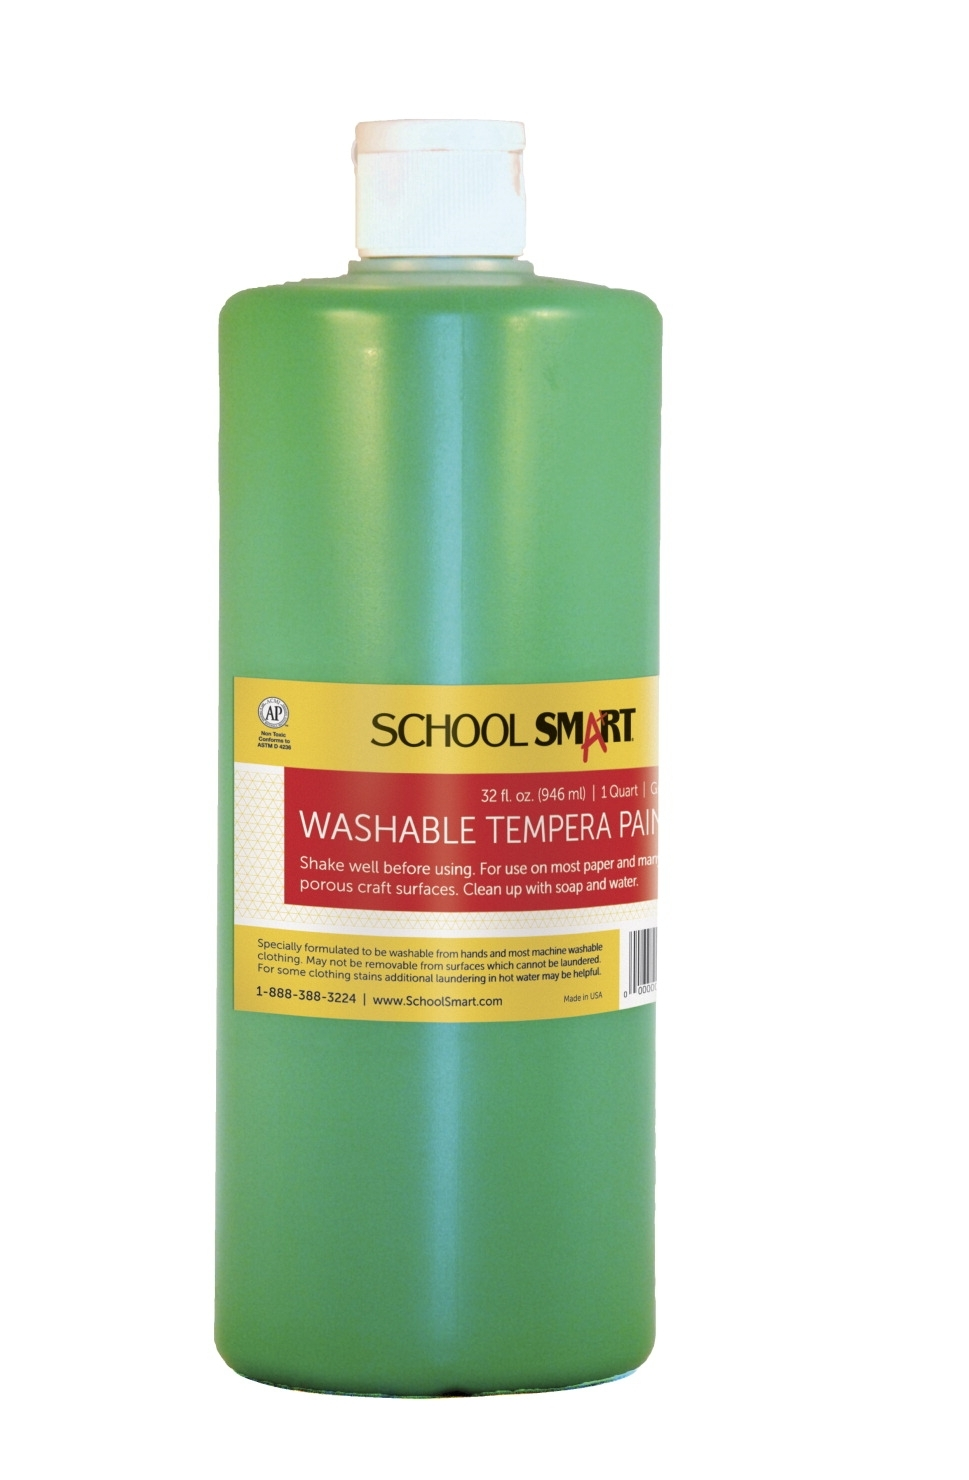 Learning: Classroom Arts & Crafts Paints Tempera Paints - 1439225 - School Smart Non-toxic Washable Tempera Paint; 1 Qt Plastic Bottle; Green 1439225